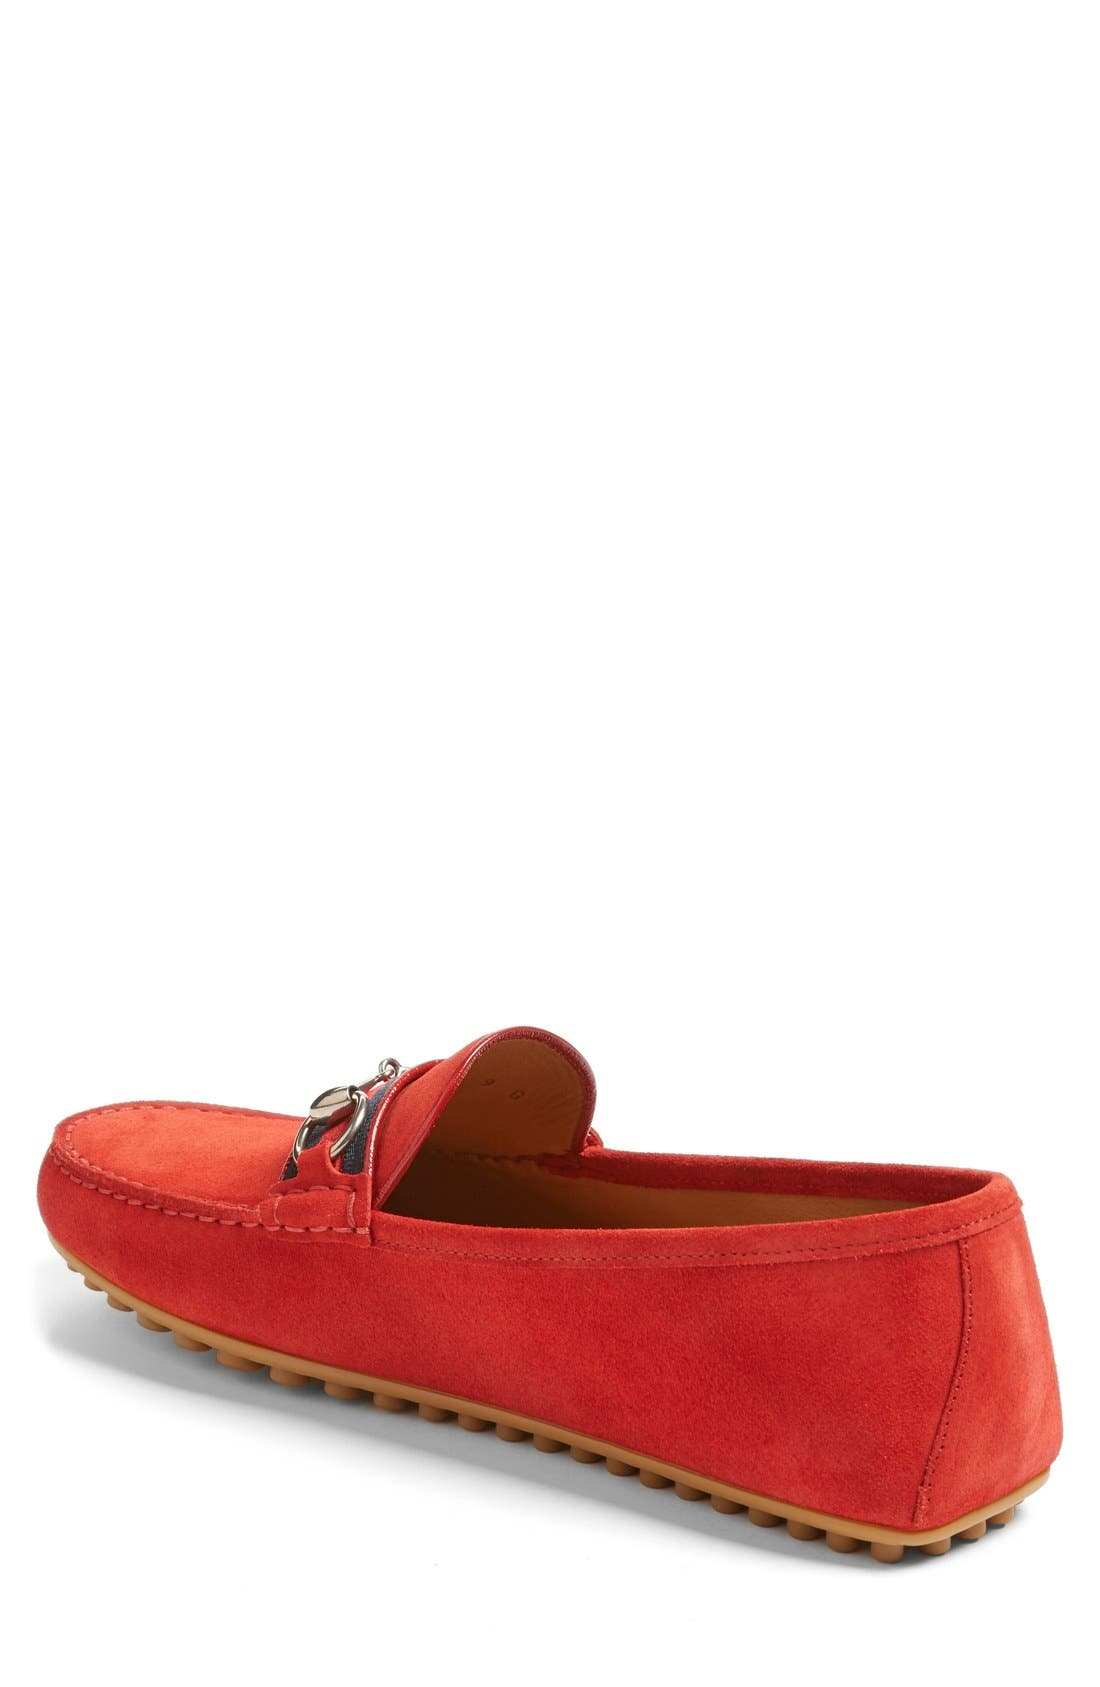 Kanye Bit Loafer,                             Alternate thumbnail 2, color,                             Ruby Suede